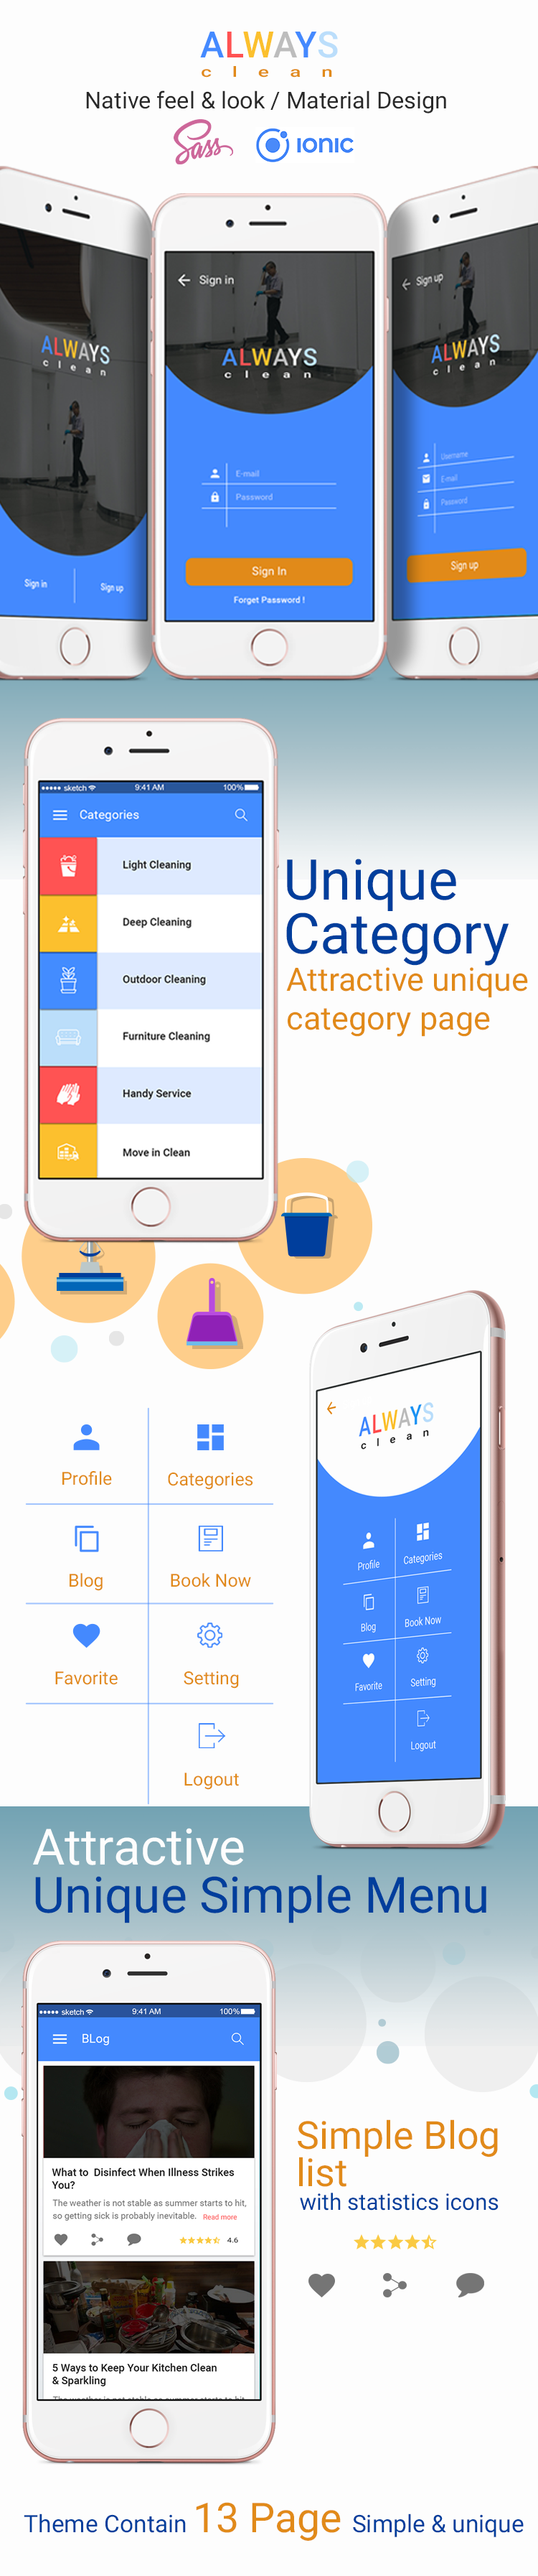 Always Clean-ionic app theme